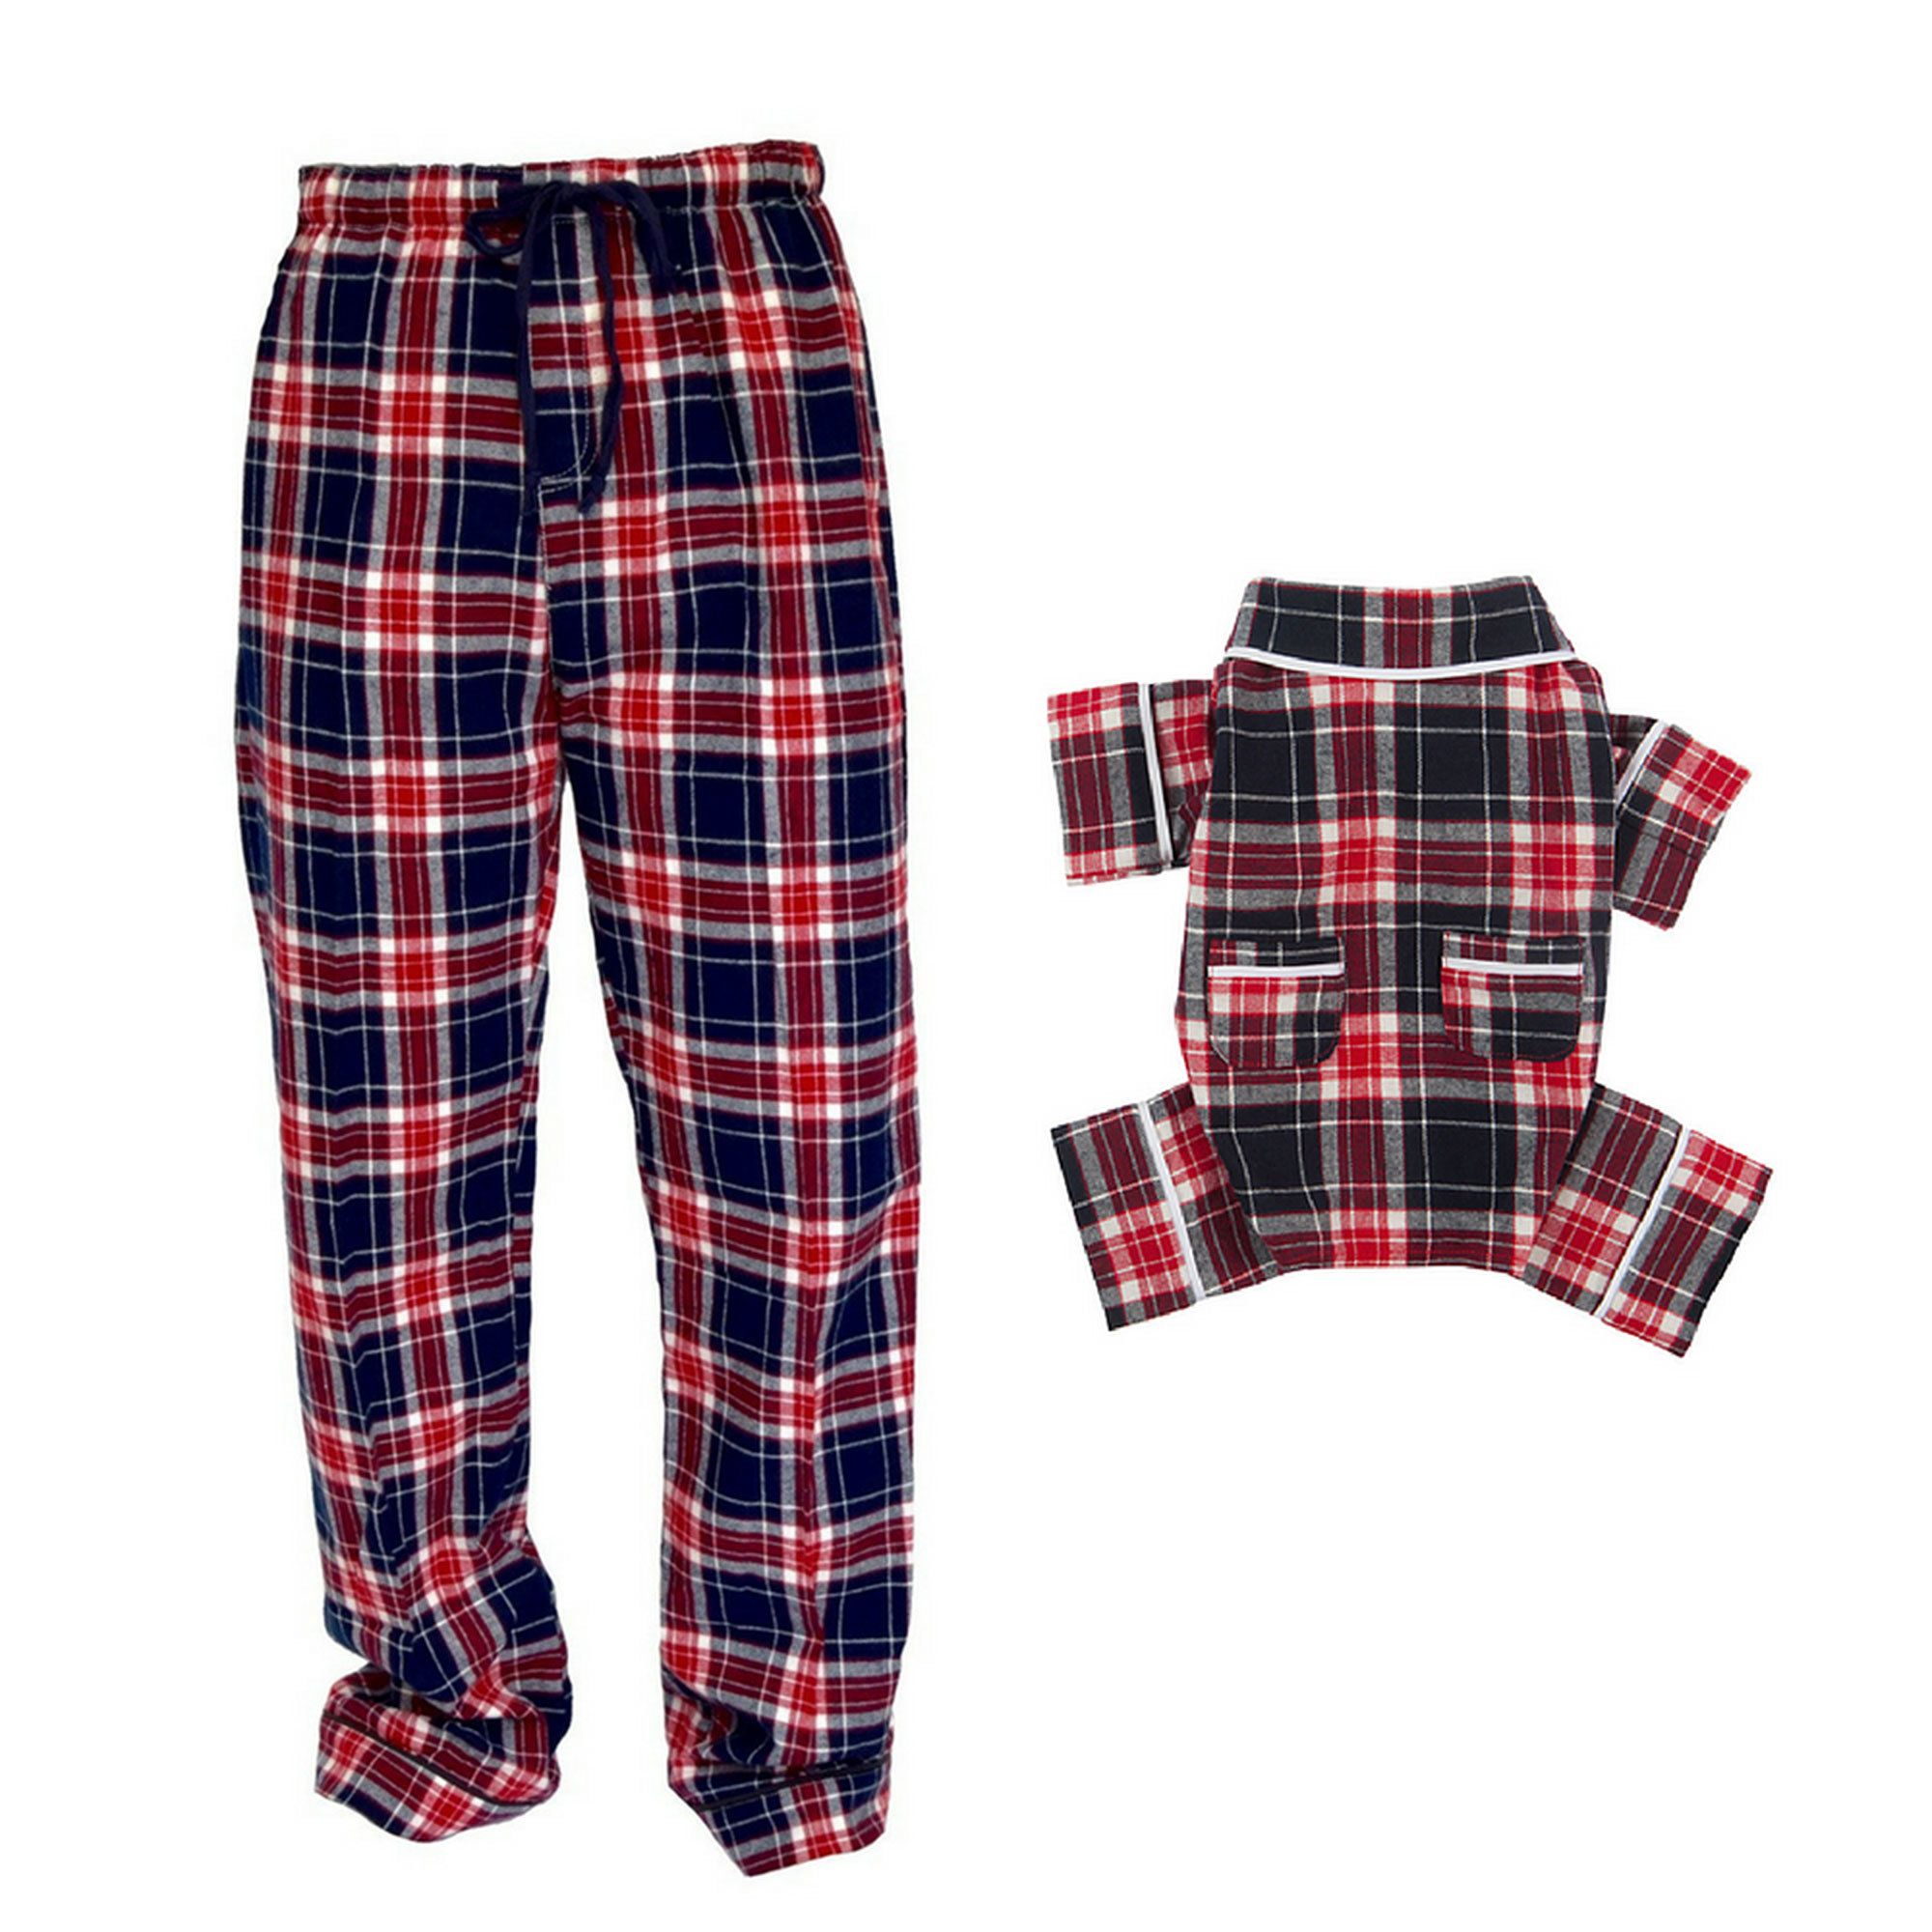 634f0bc637 You and Your Dog Can Now Have Matching Pajamas